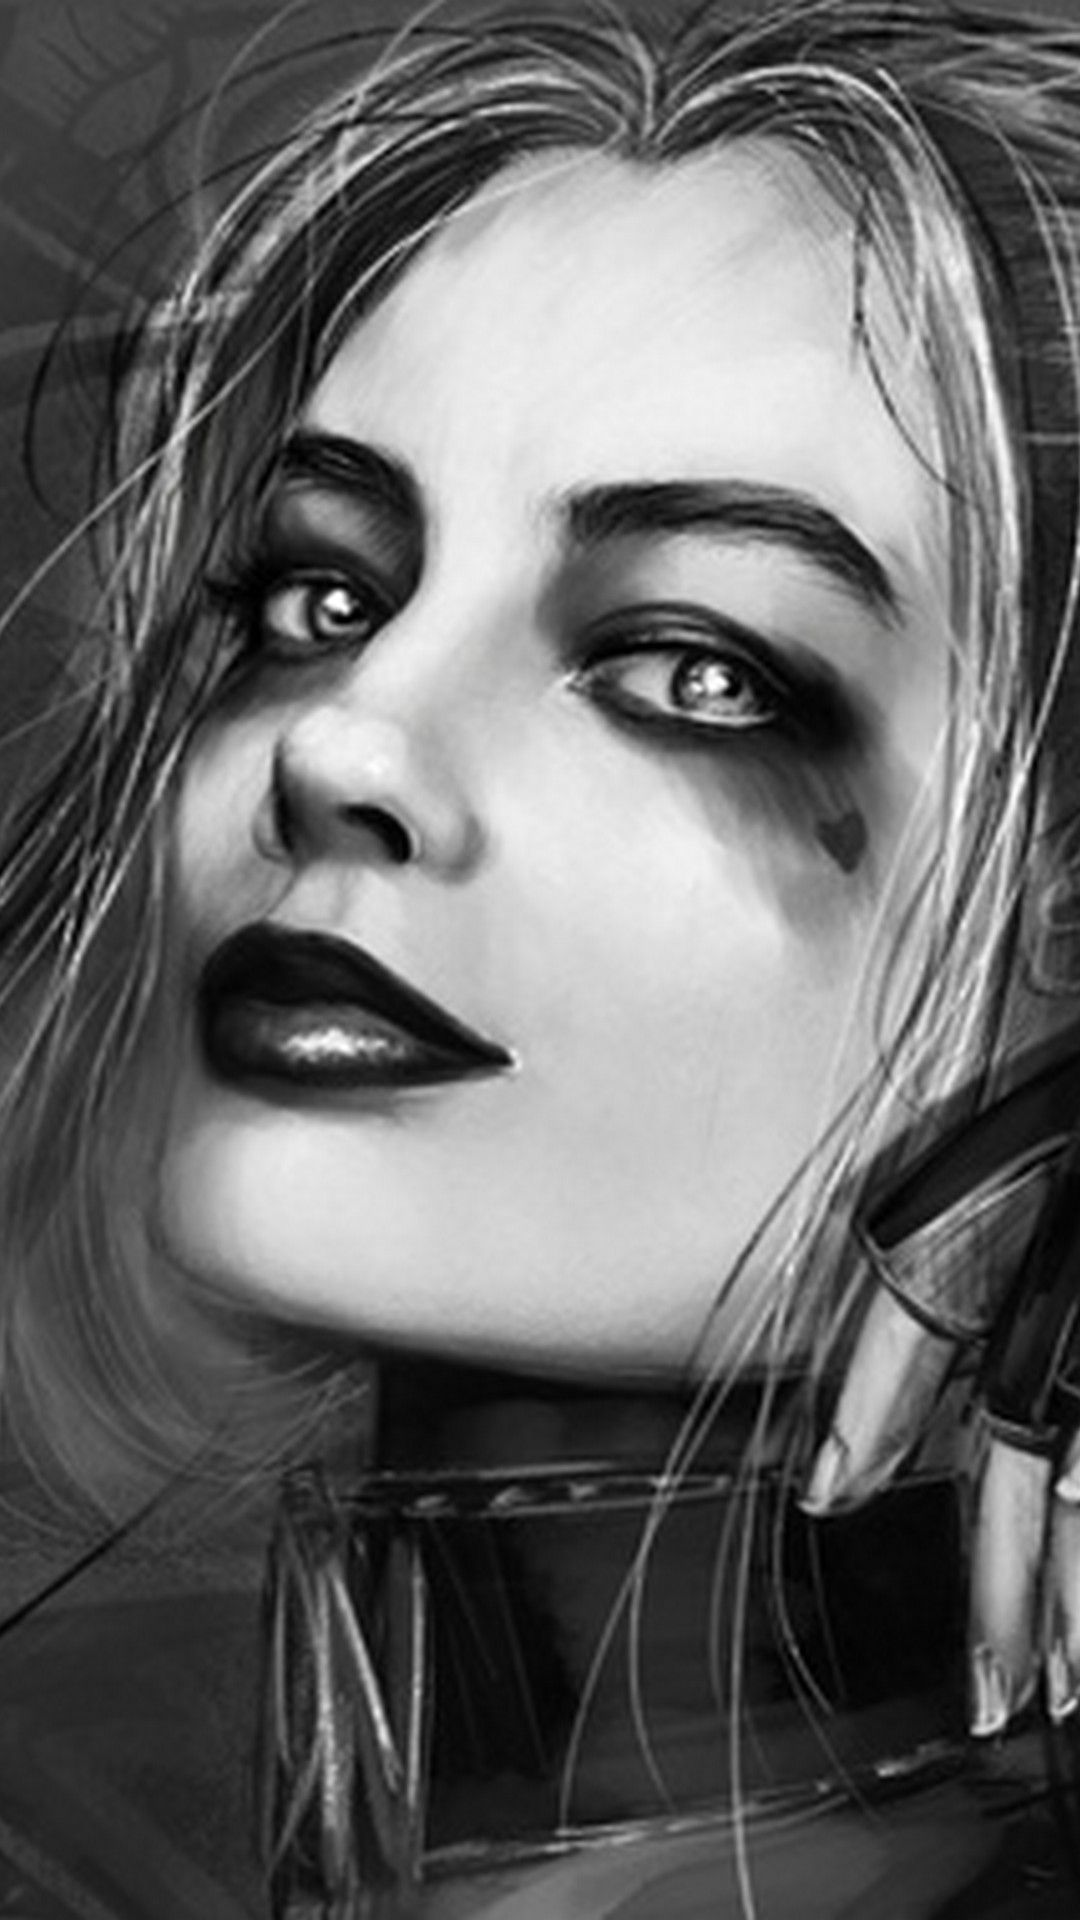 Harley Quinn Android HD Wallpapers - Wallpaper Cave